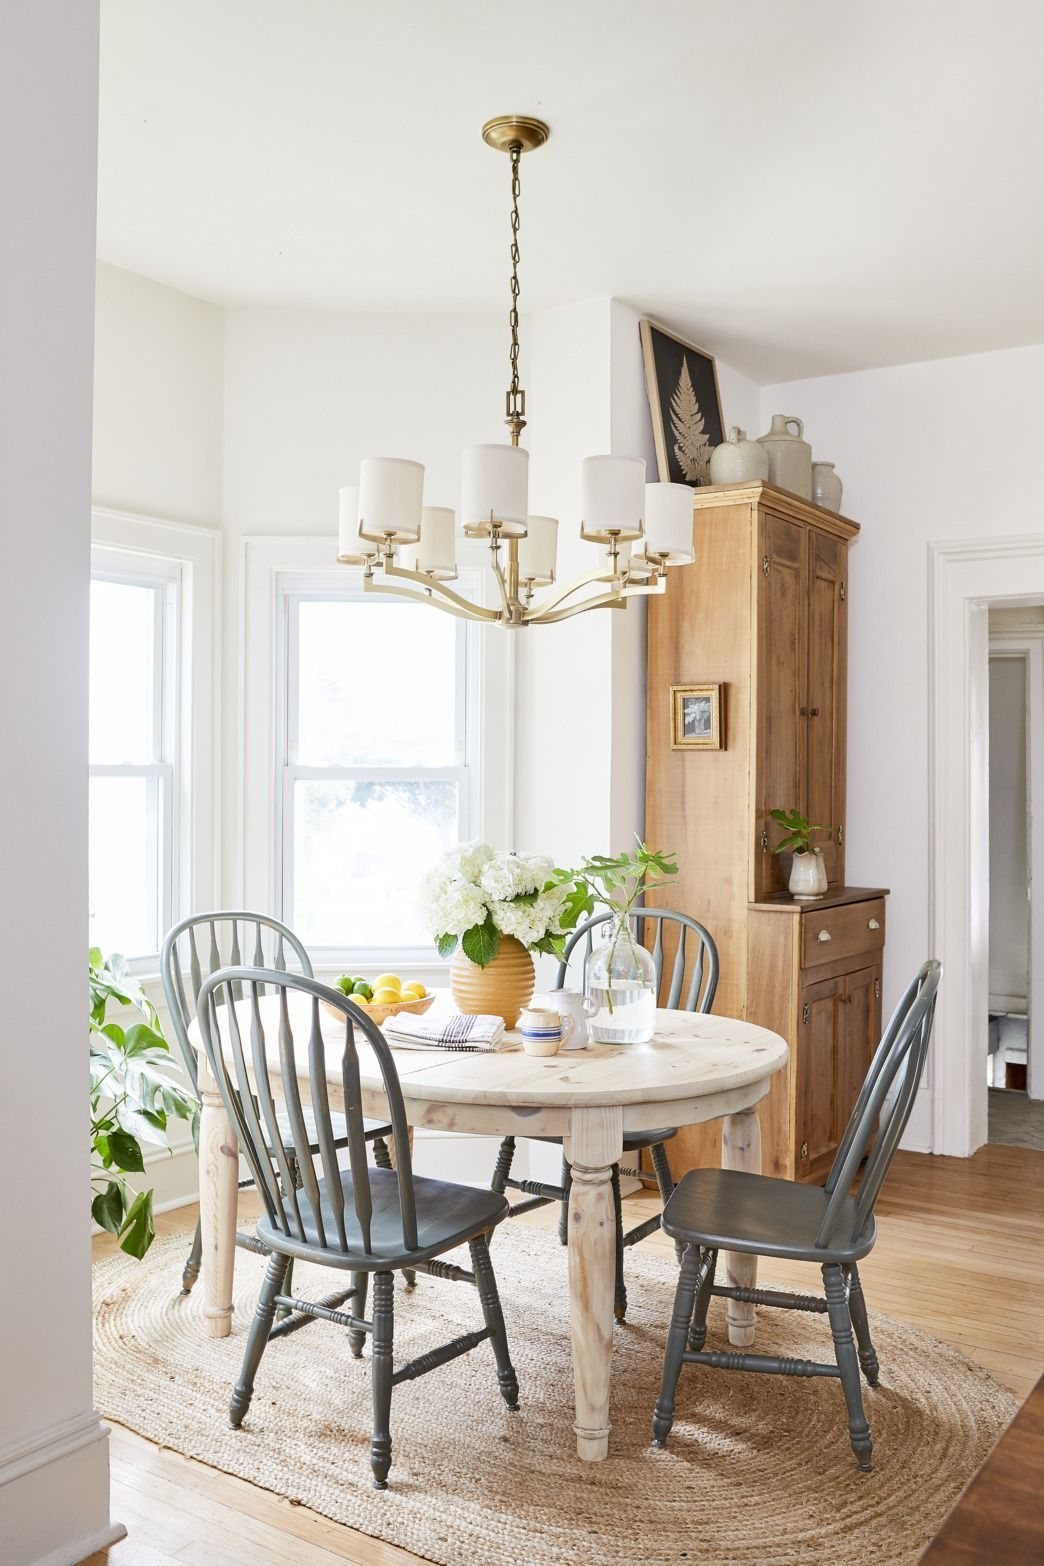 Revamp Your Dining Room With These Gorgeous Decorating Ideas In